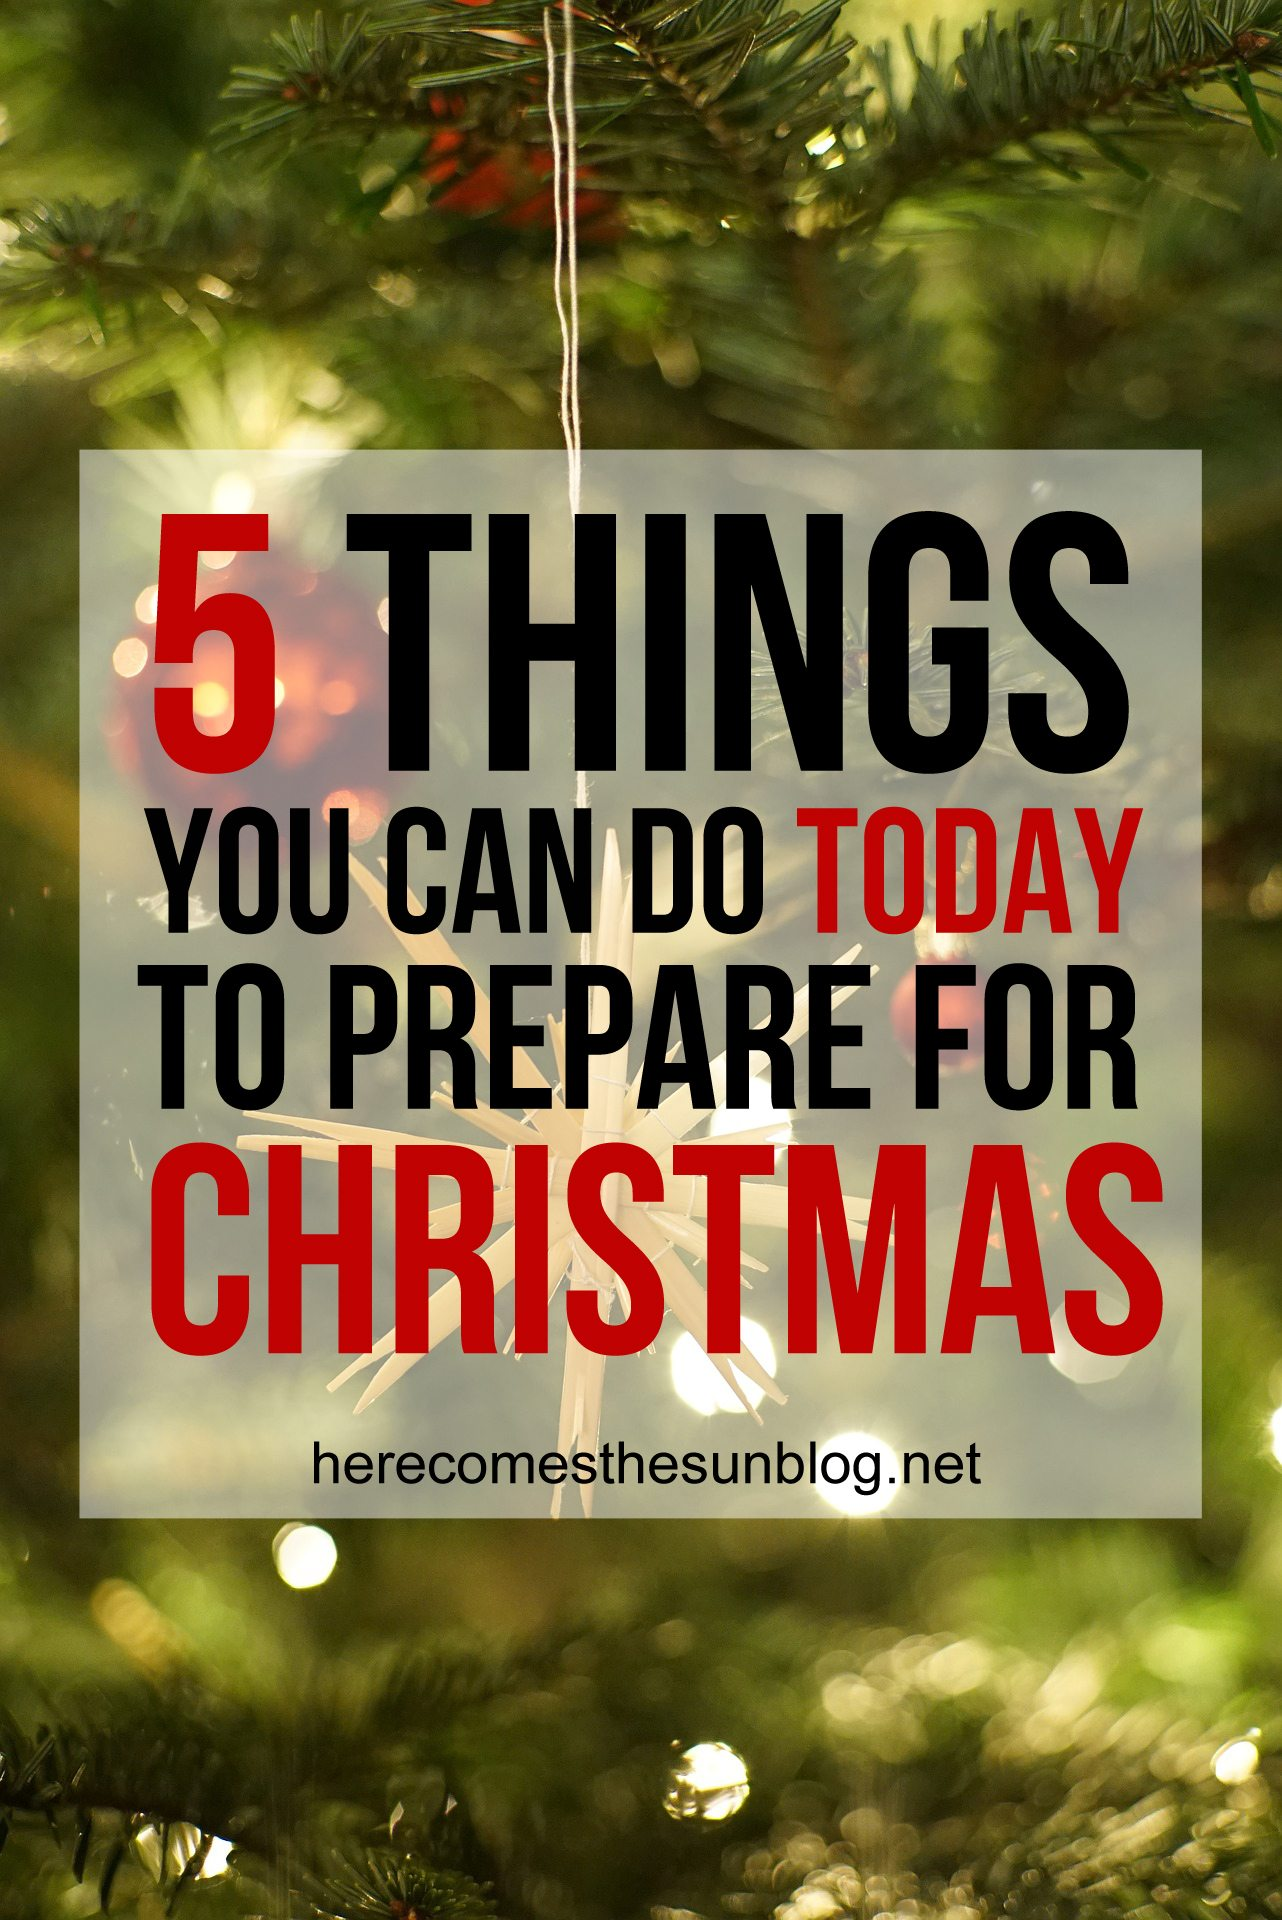 5 simple things you can do TODAY to prepare for Christmas. Click to see the tips.